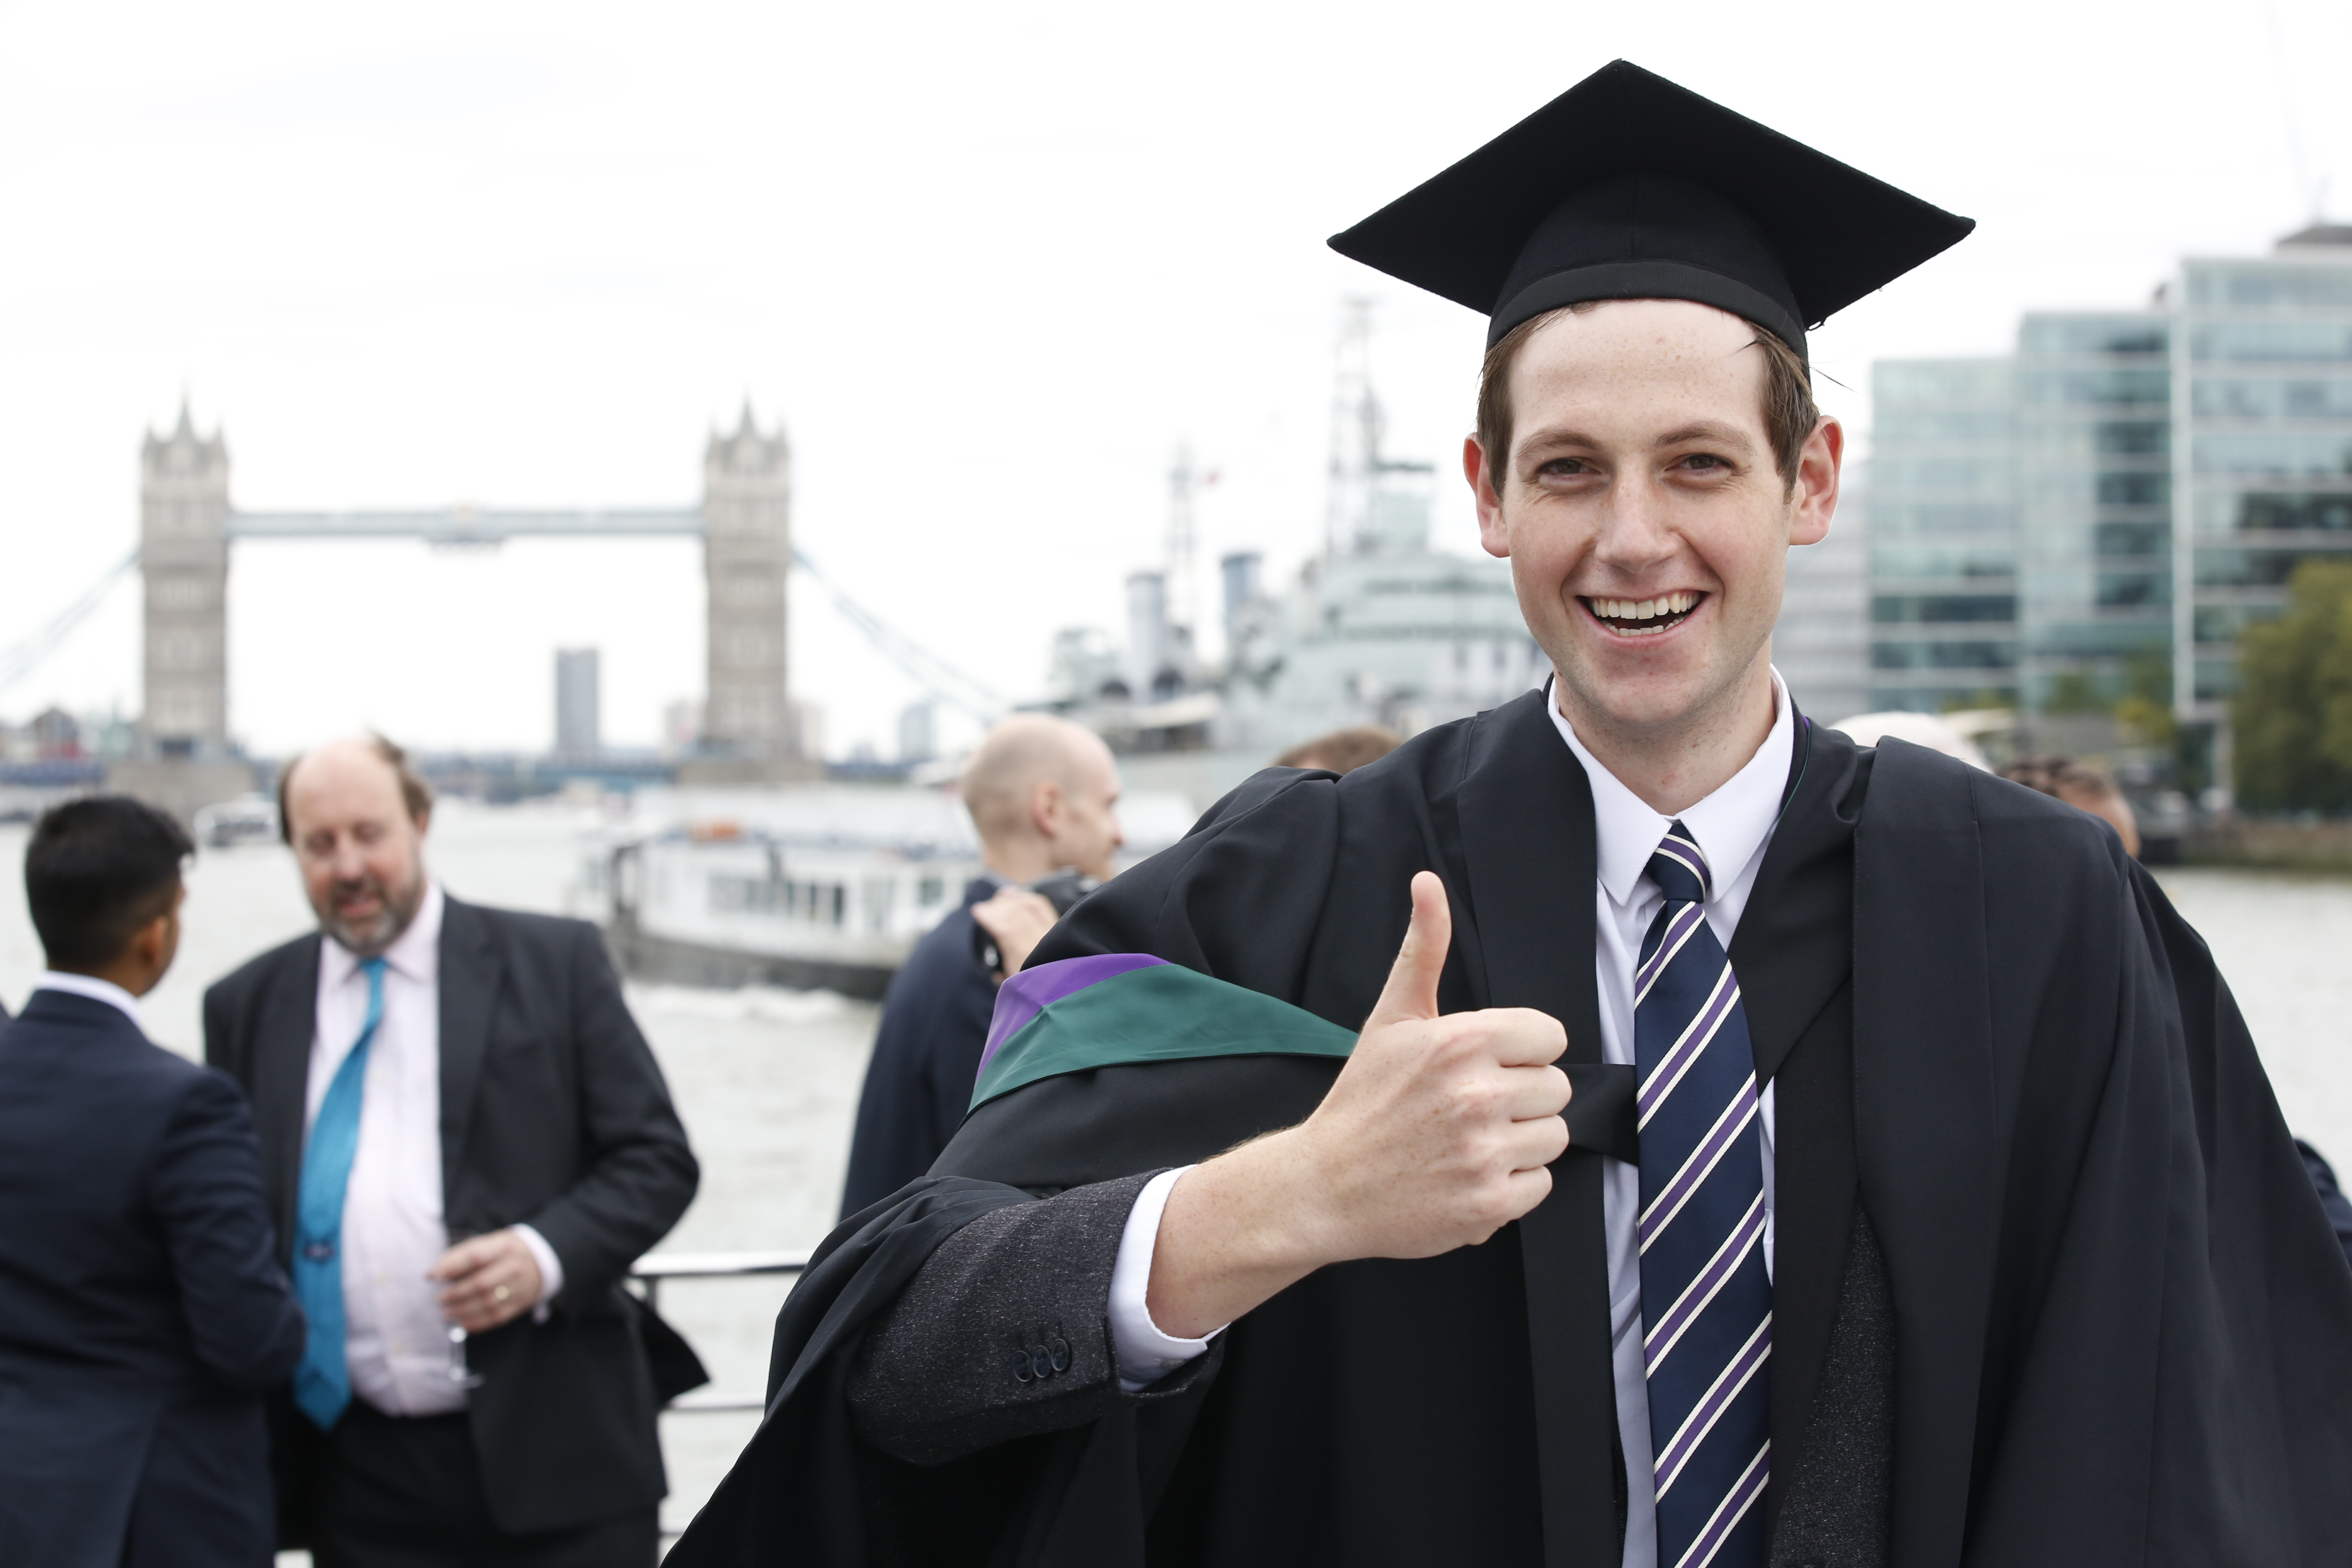 Pearson Business School Graduate, Sam Burley